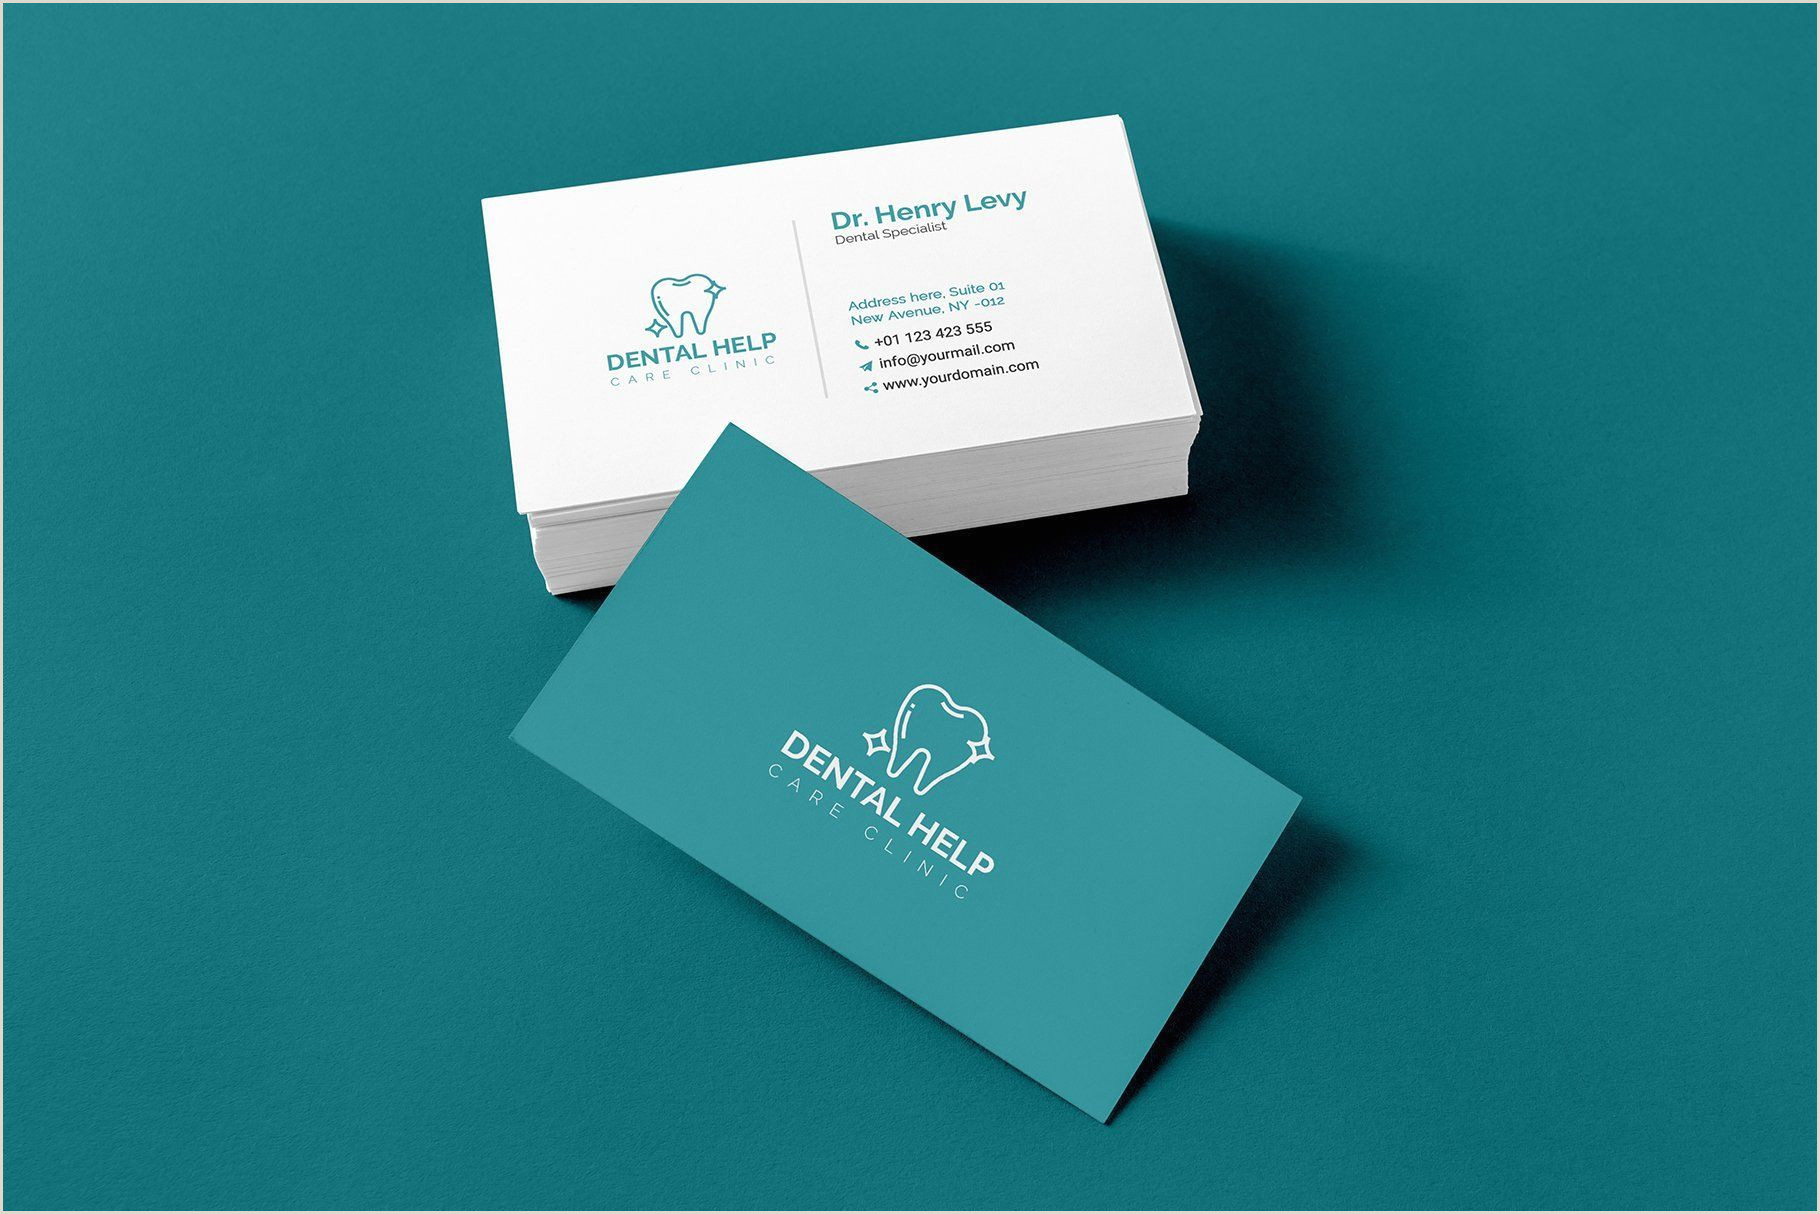 Personal Business Card Samples Dentist Business Card Templates In 2020